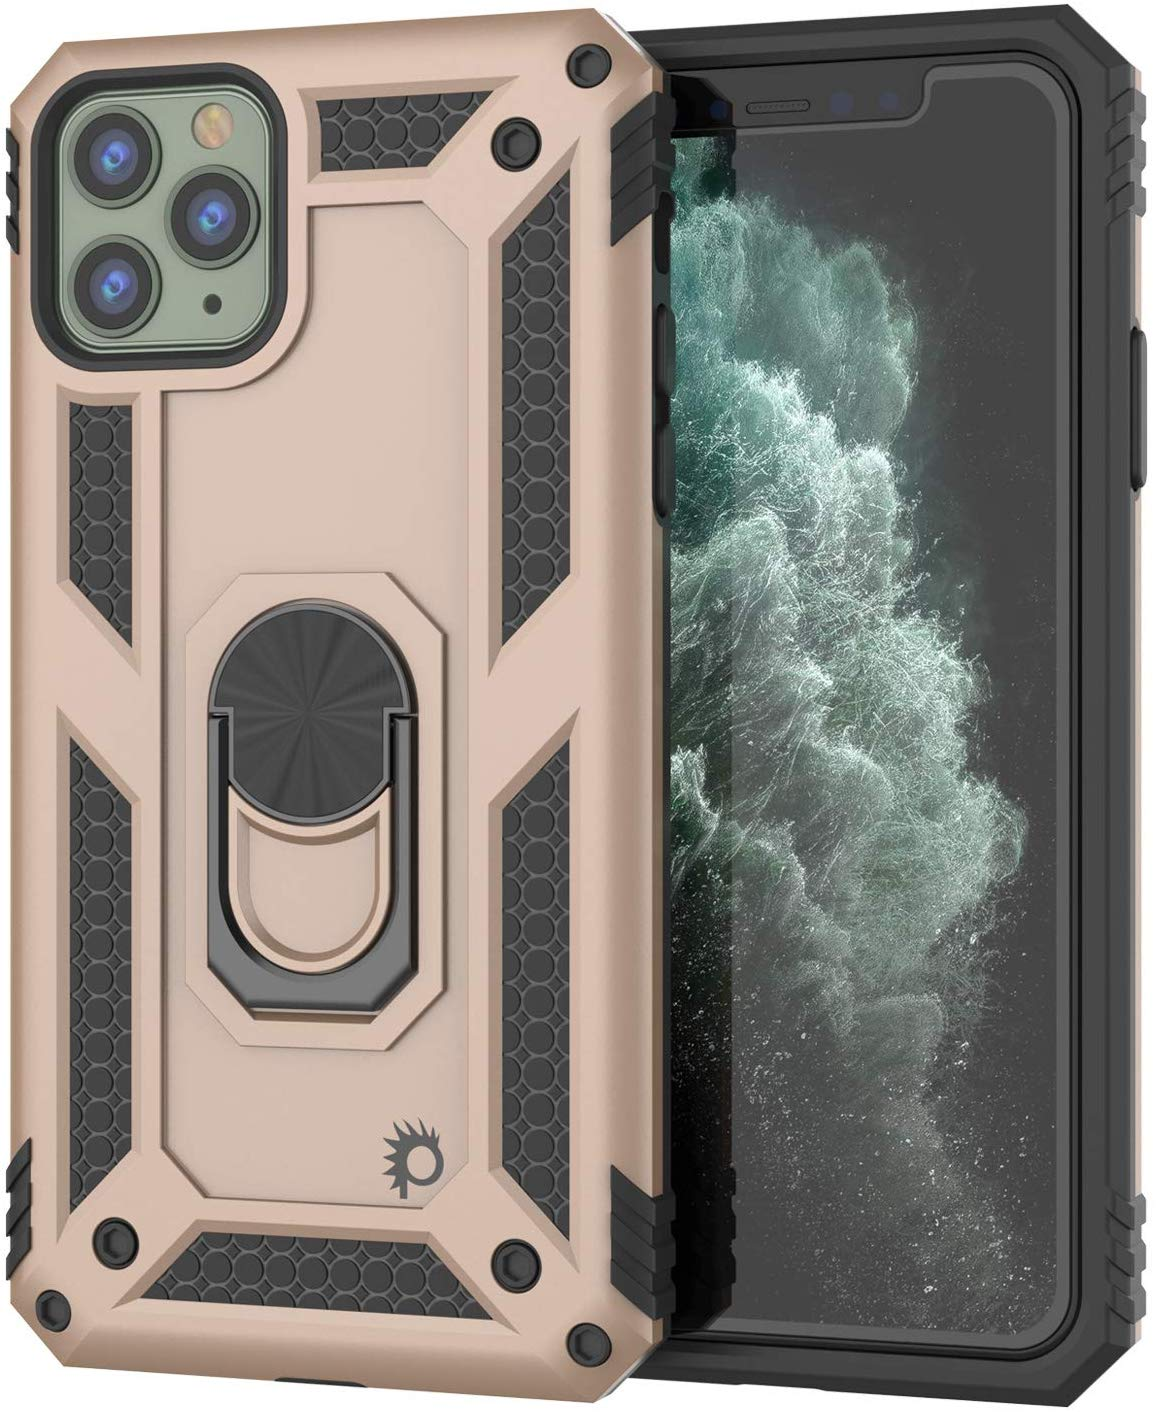 Apple iPhone 11 Pro Max Punkcase Armor Military Case Gold